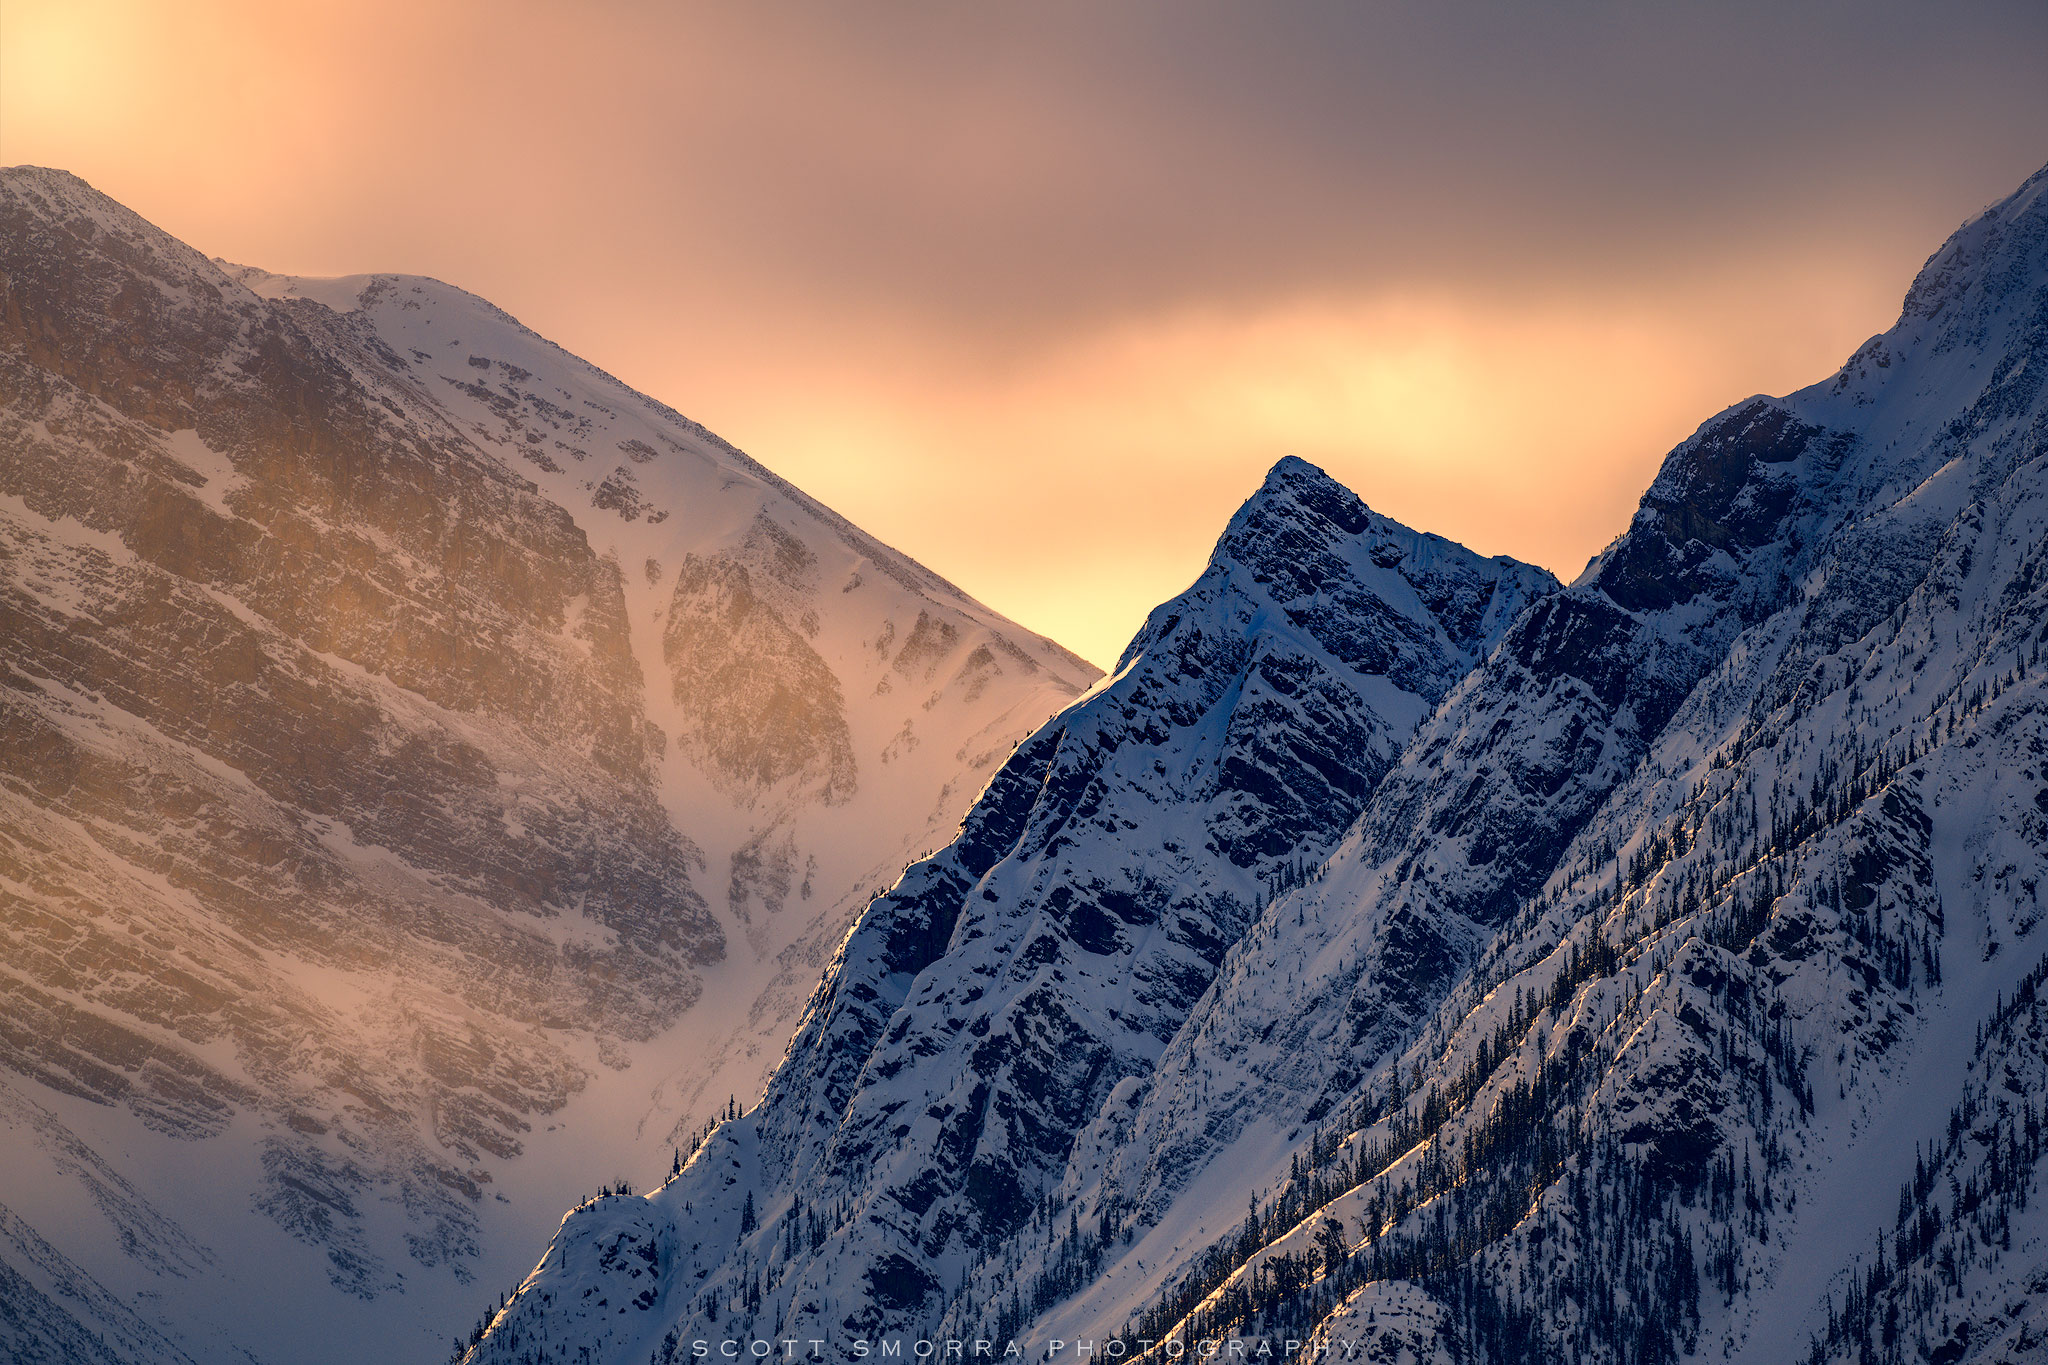 Jasper National Park, Alberta, Canada, sunrise, light, snow, mountains, photo